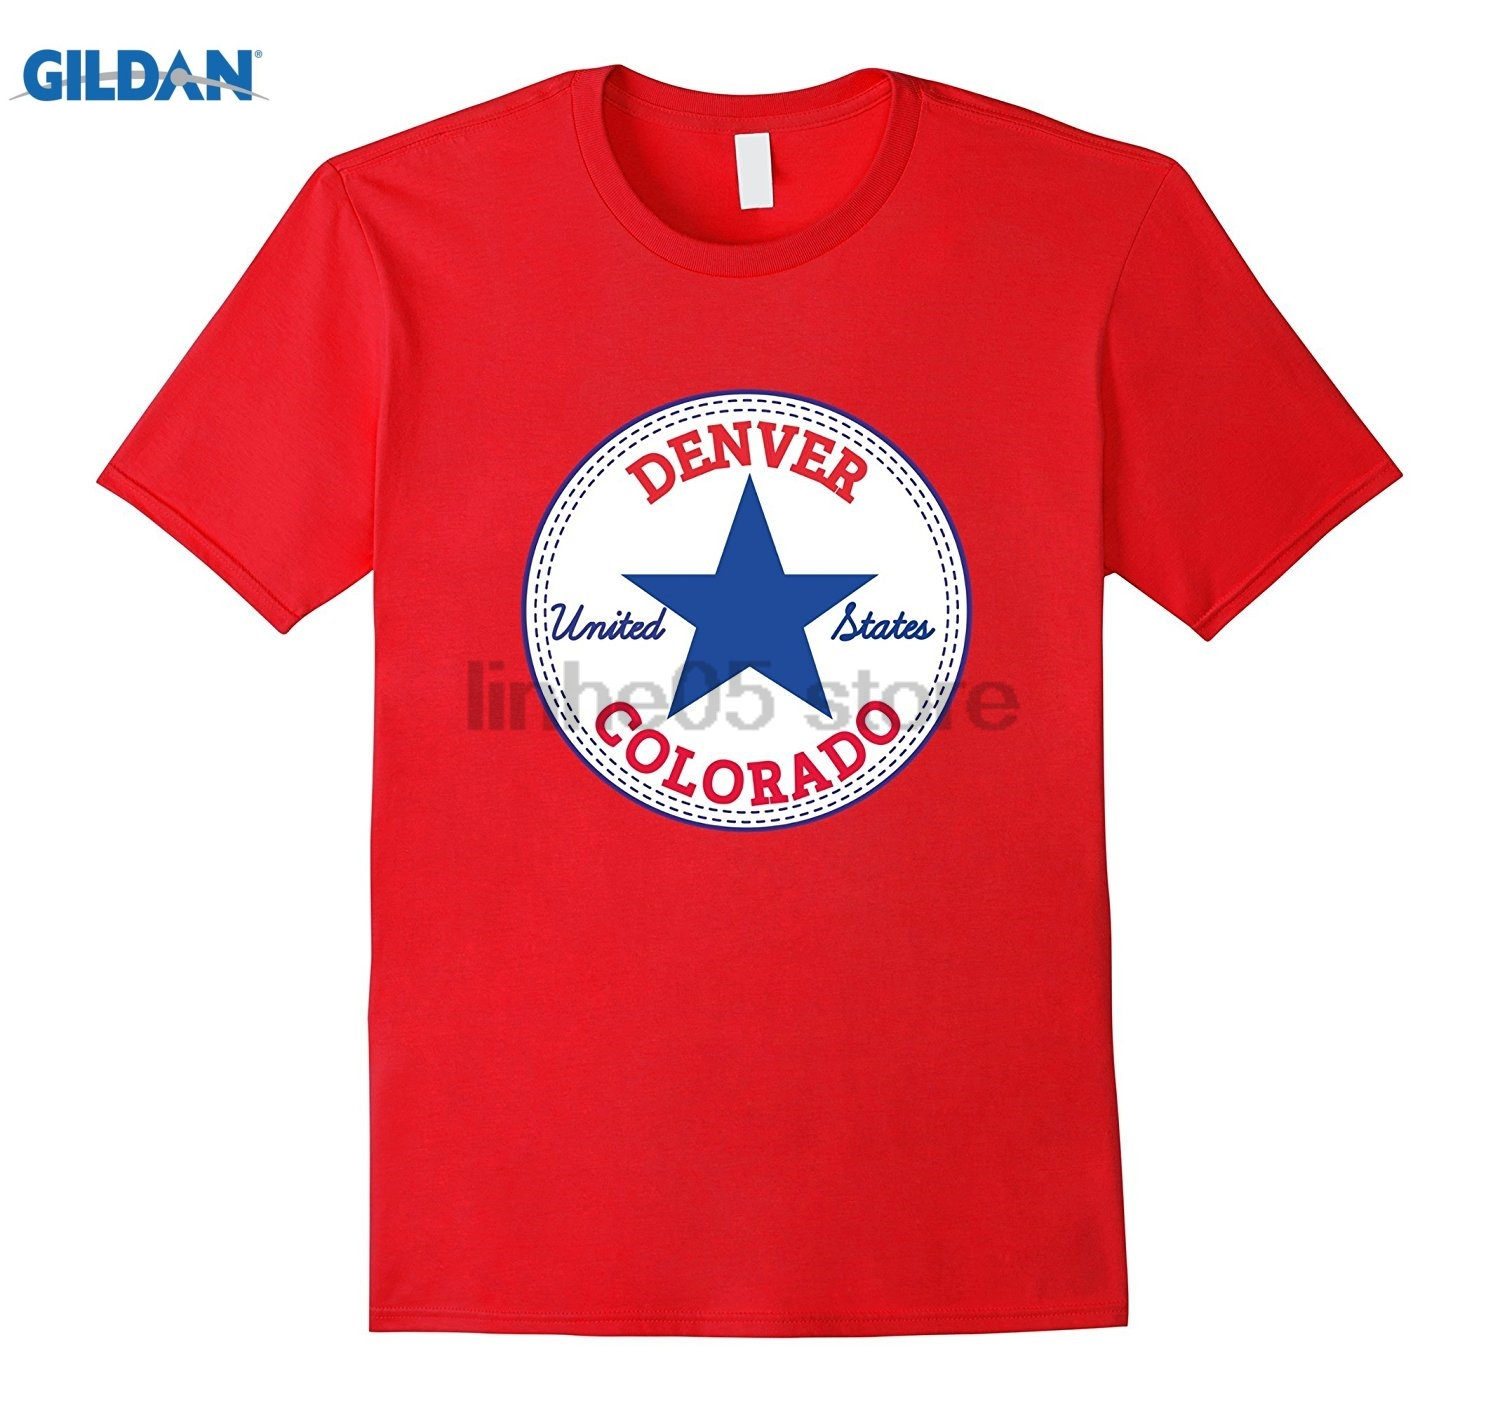 GILDAN DENVER - COLORADO United States USA relaxed fit T-Shirt Womens T-shirt